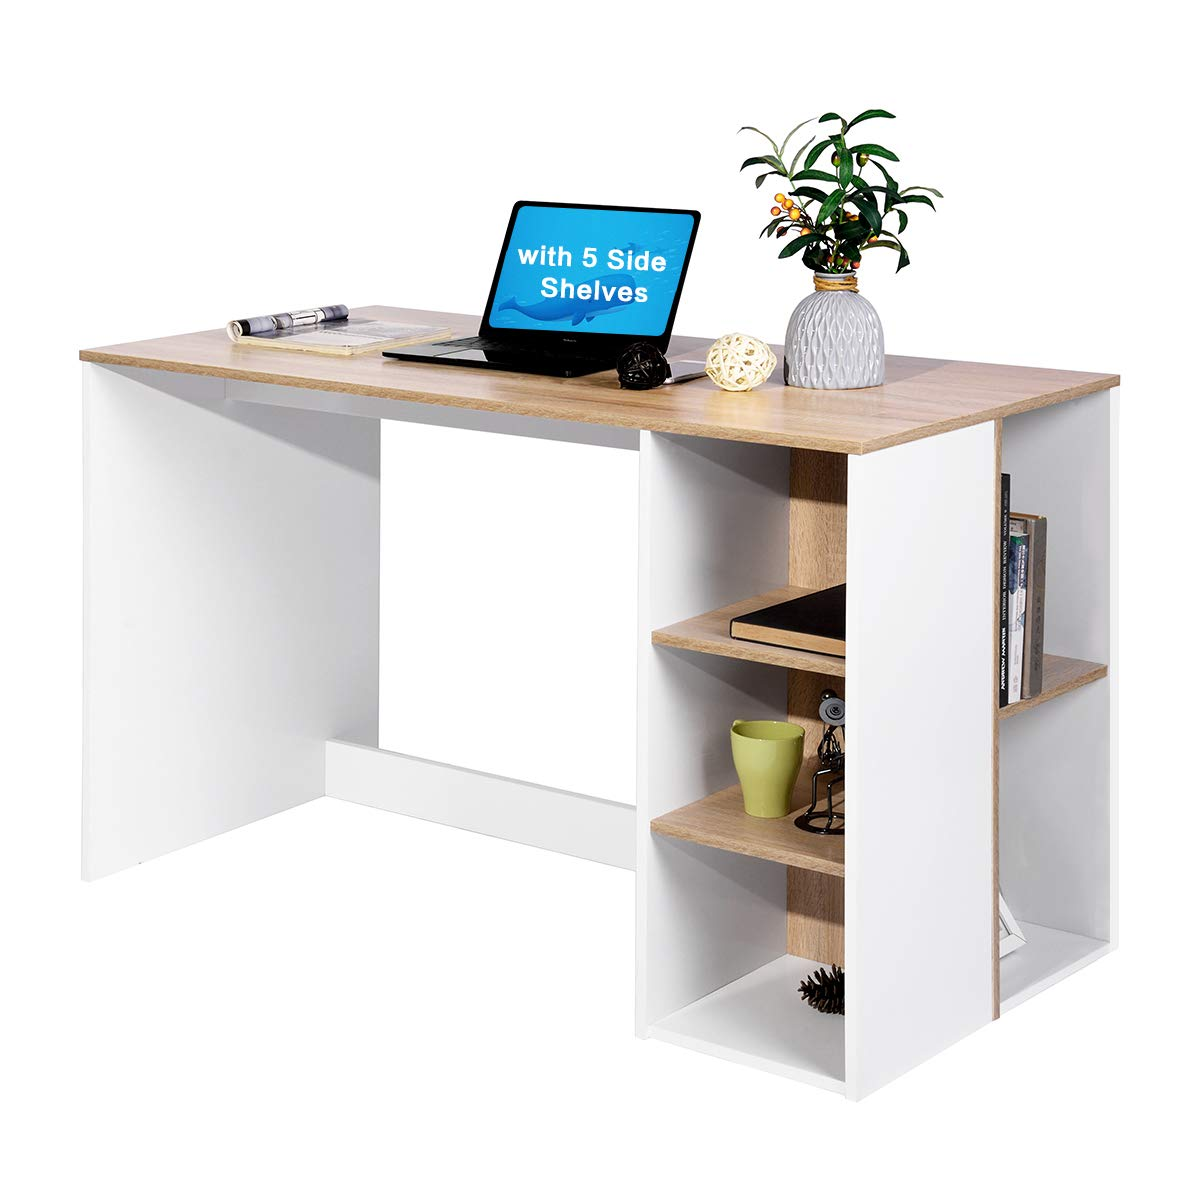 Coavas Office-Computer Desk with Storage, Study-Work Desk with 5 Shelves, Students-Writing Desk Home Laptop Study Table Modern Wood Hutch Large Workstation with Bookcase BREN11 /Beech and White by Coavas (Image #1)